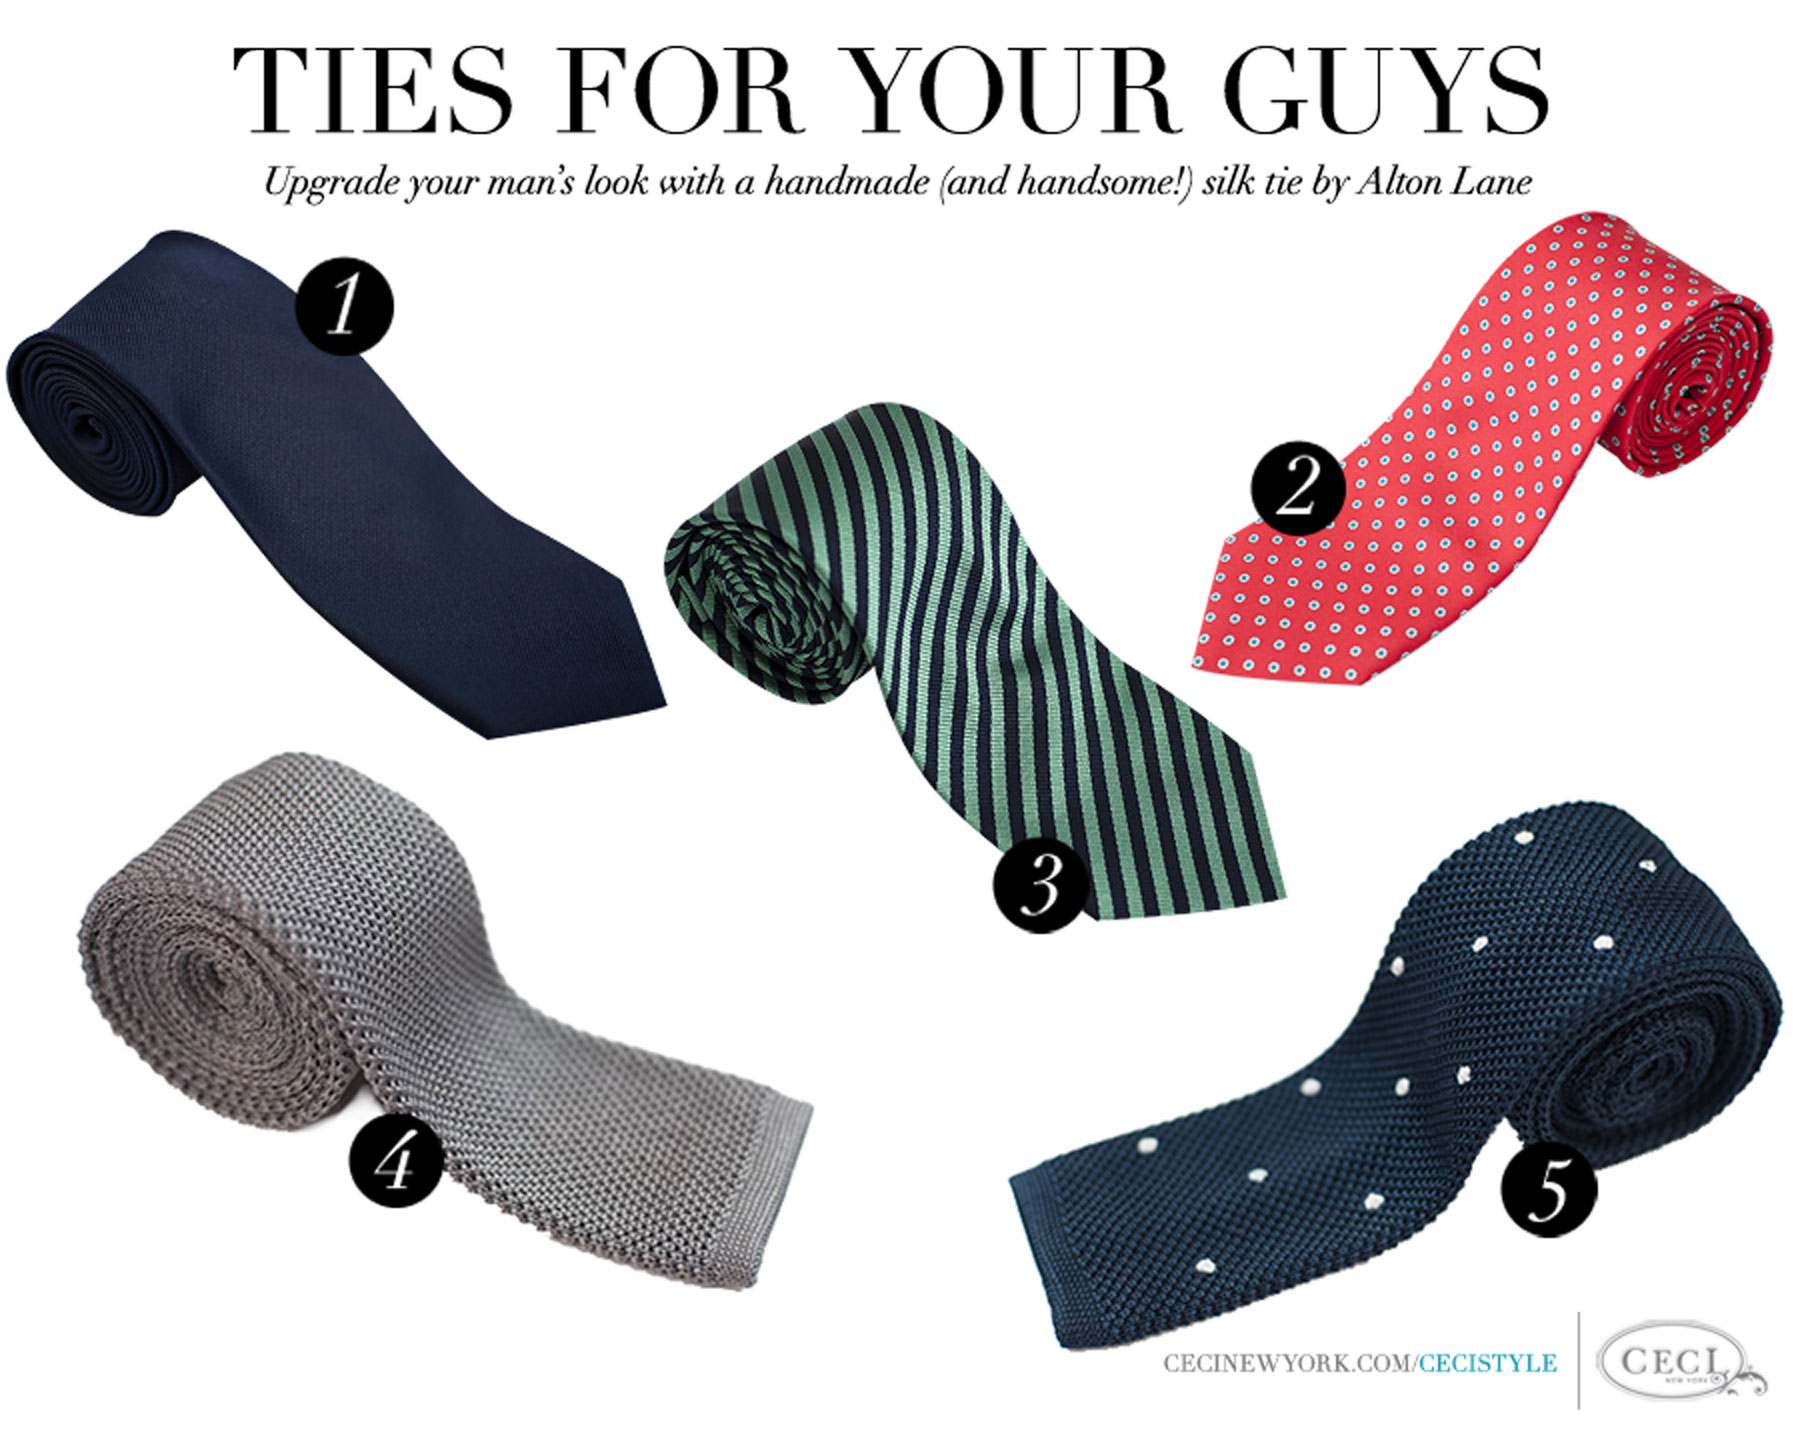 Ties for Your Guys - Upgrade your man's look with a handmade (and handsome!) silk tie by Alton Lane